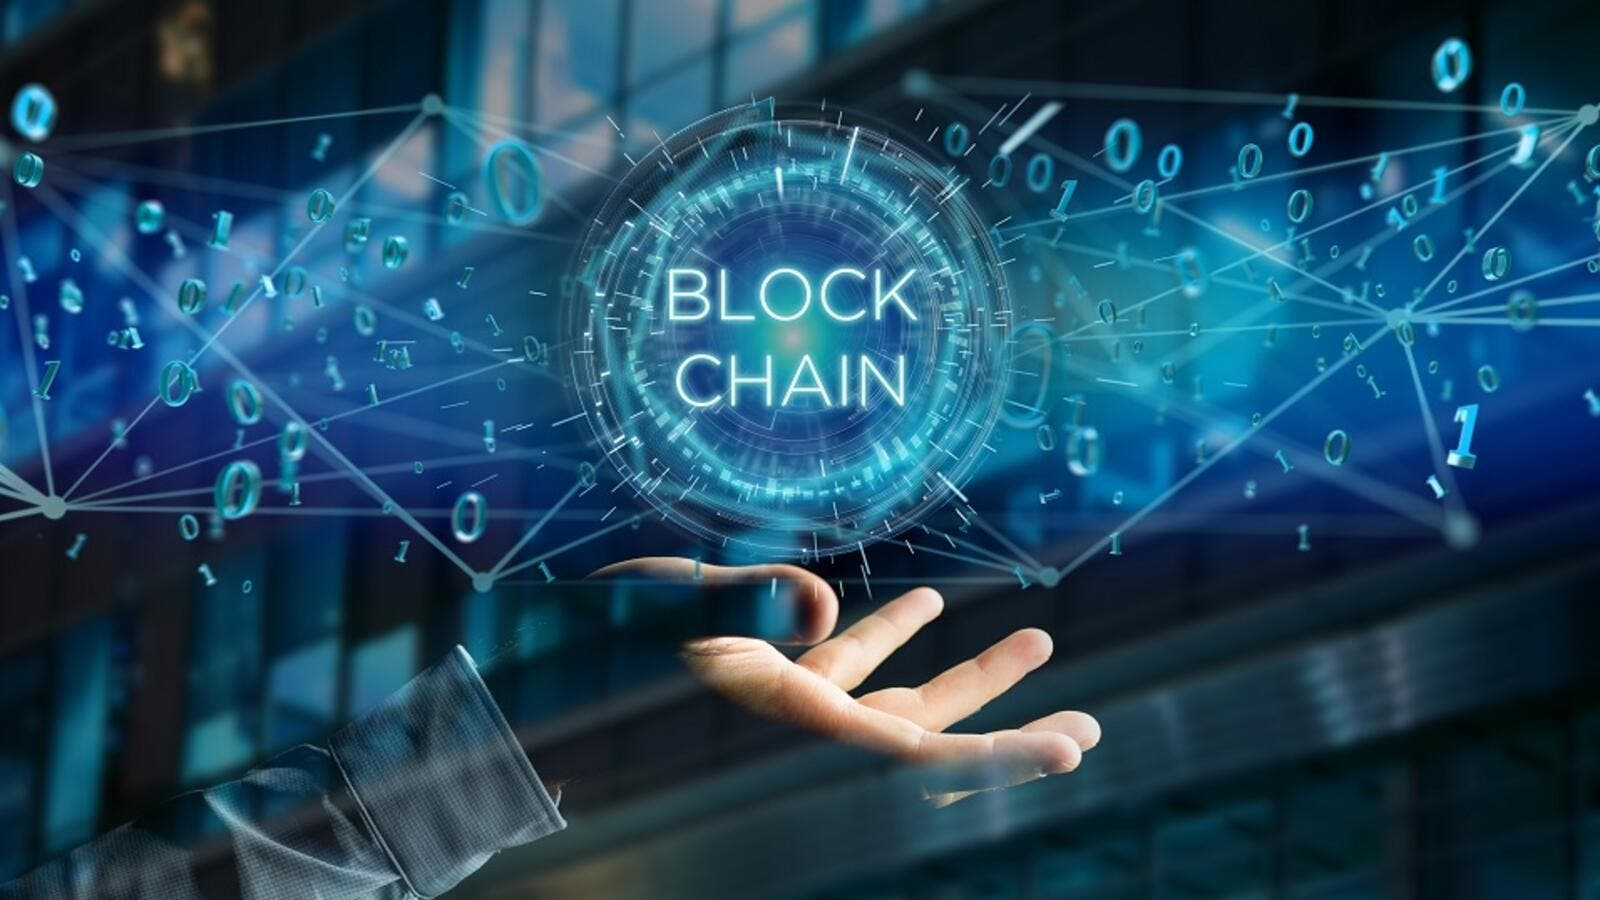 'Blockchain' is the buzzword thrown around frequently when the future of technology is discussed. (Shutterstock)